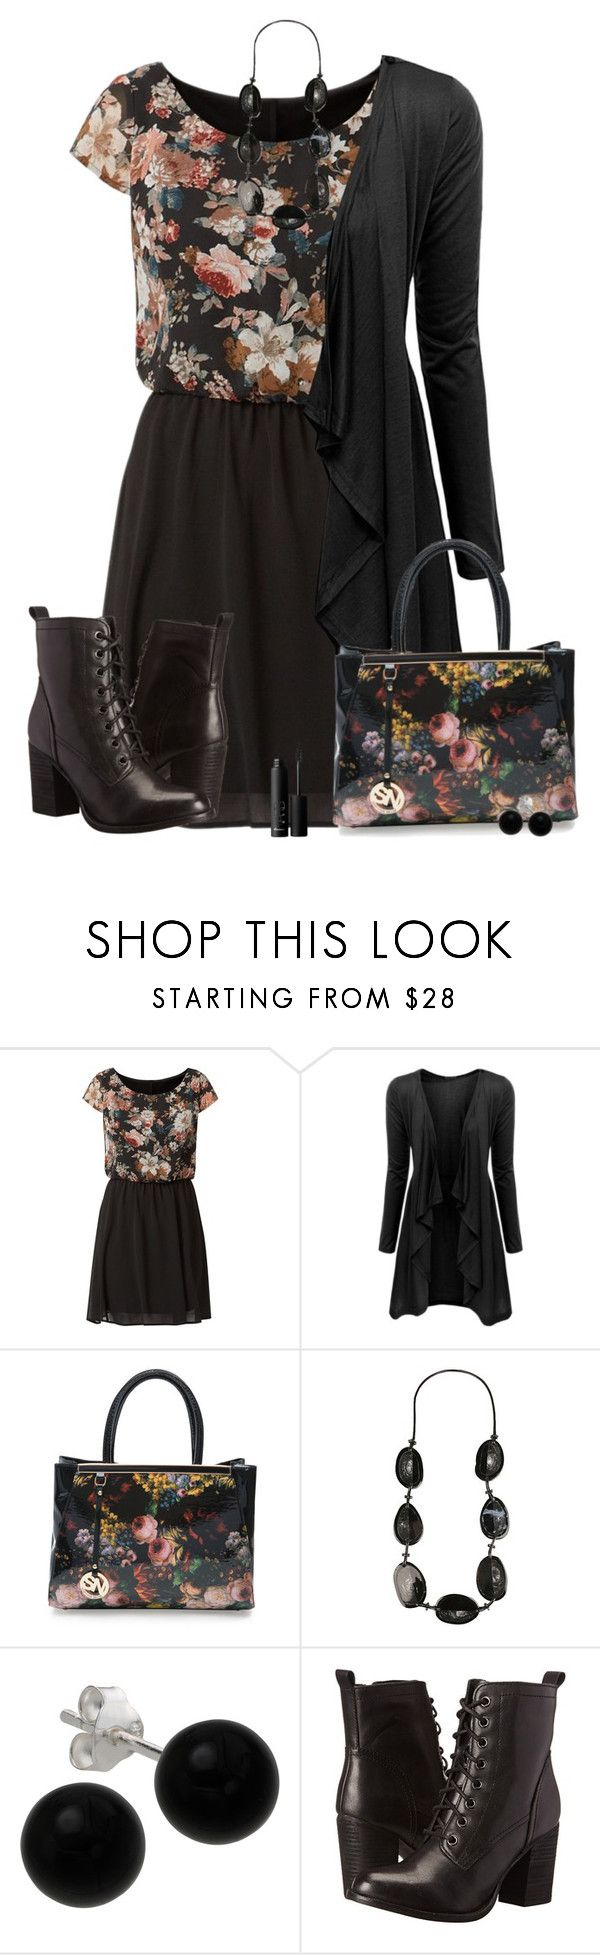 """black & floral"" by countrycousin ❤ liked on Polyvore featuring Pussycat, Doublju, Ashley Stewart, Bridge Jewelry, Steve Madden and NARS Cosmetics"